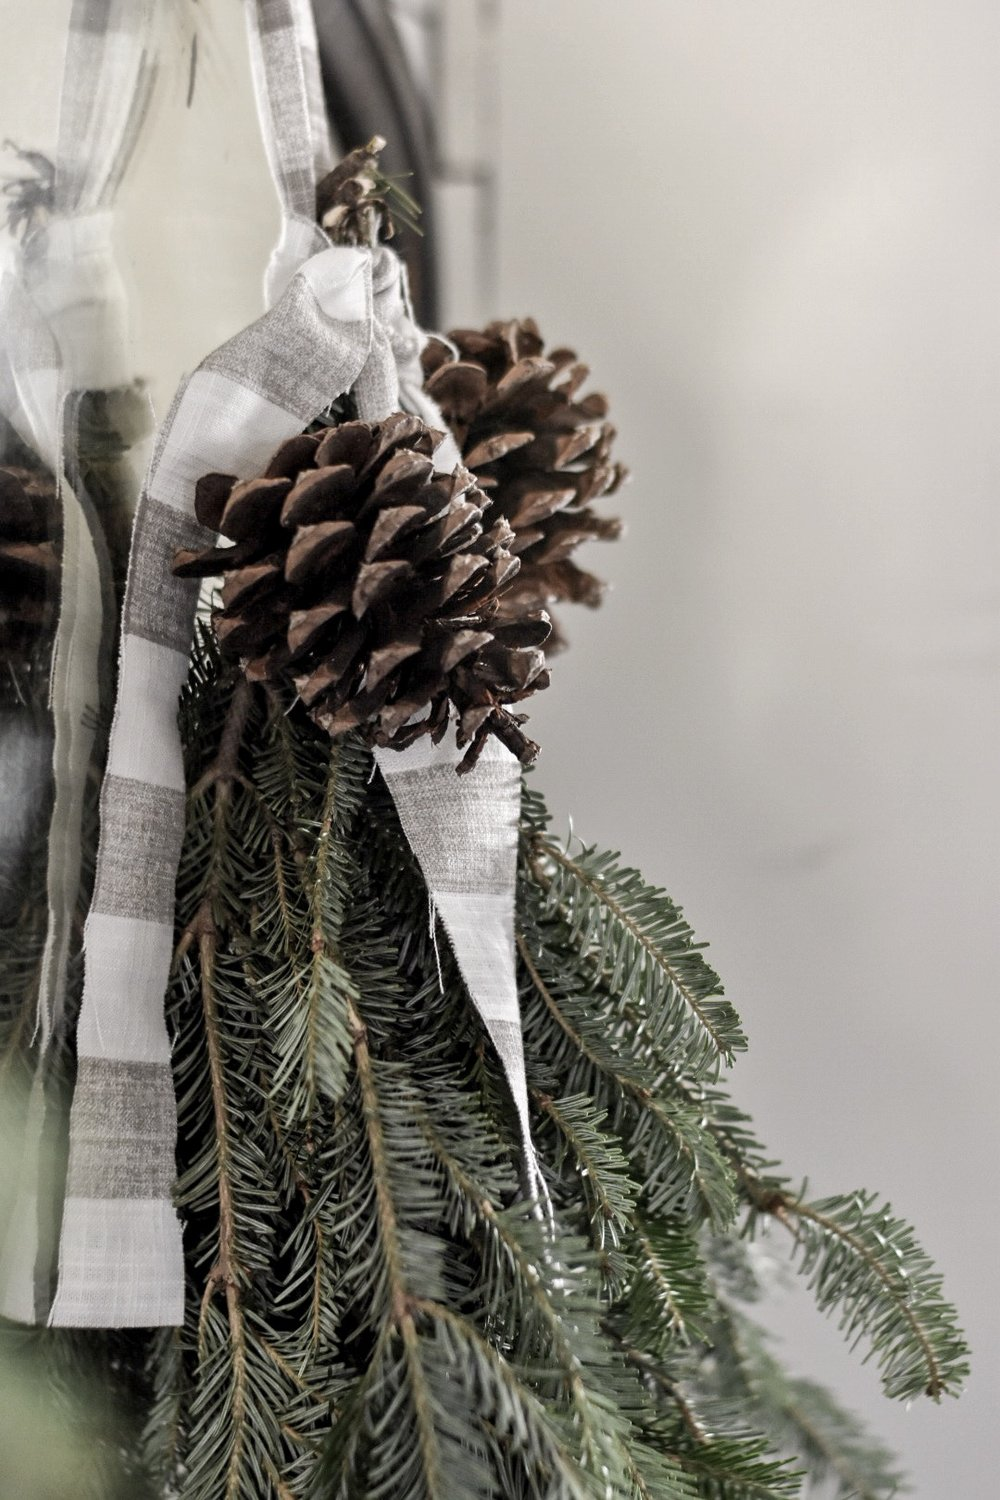 Gathered and Foraged Evergreen Christmas Swag - Rocky Hedge Farm